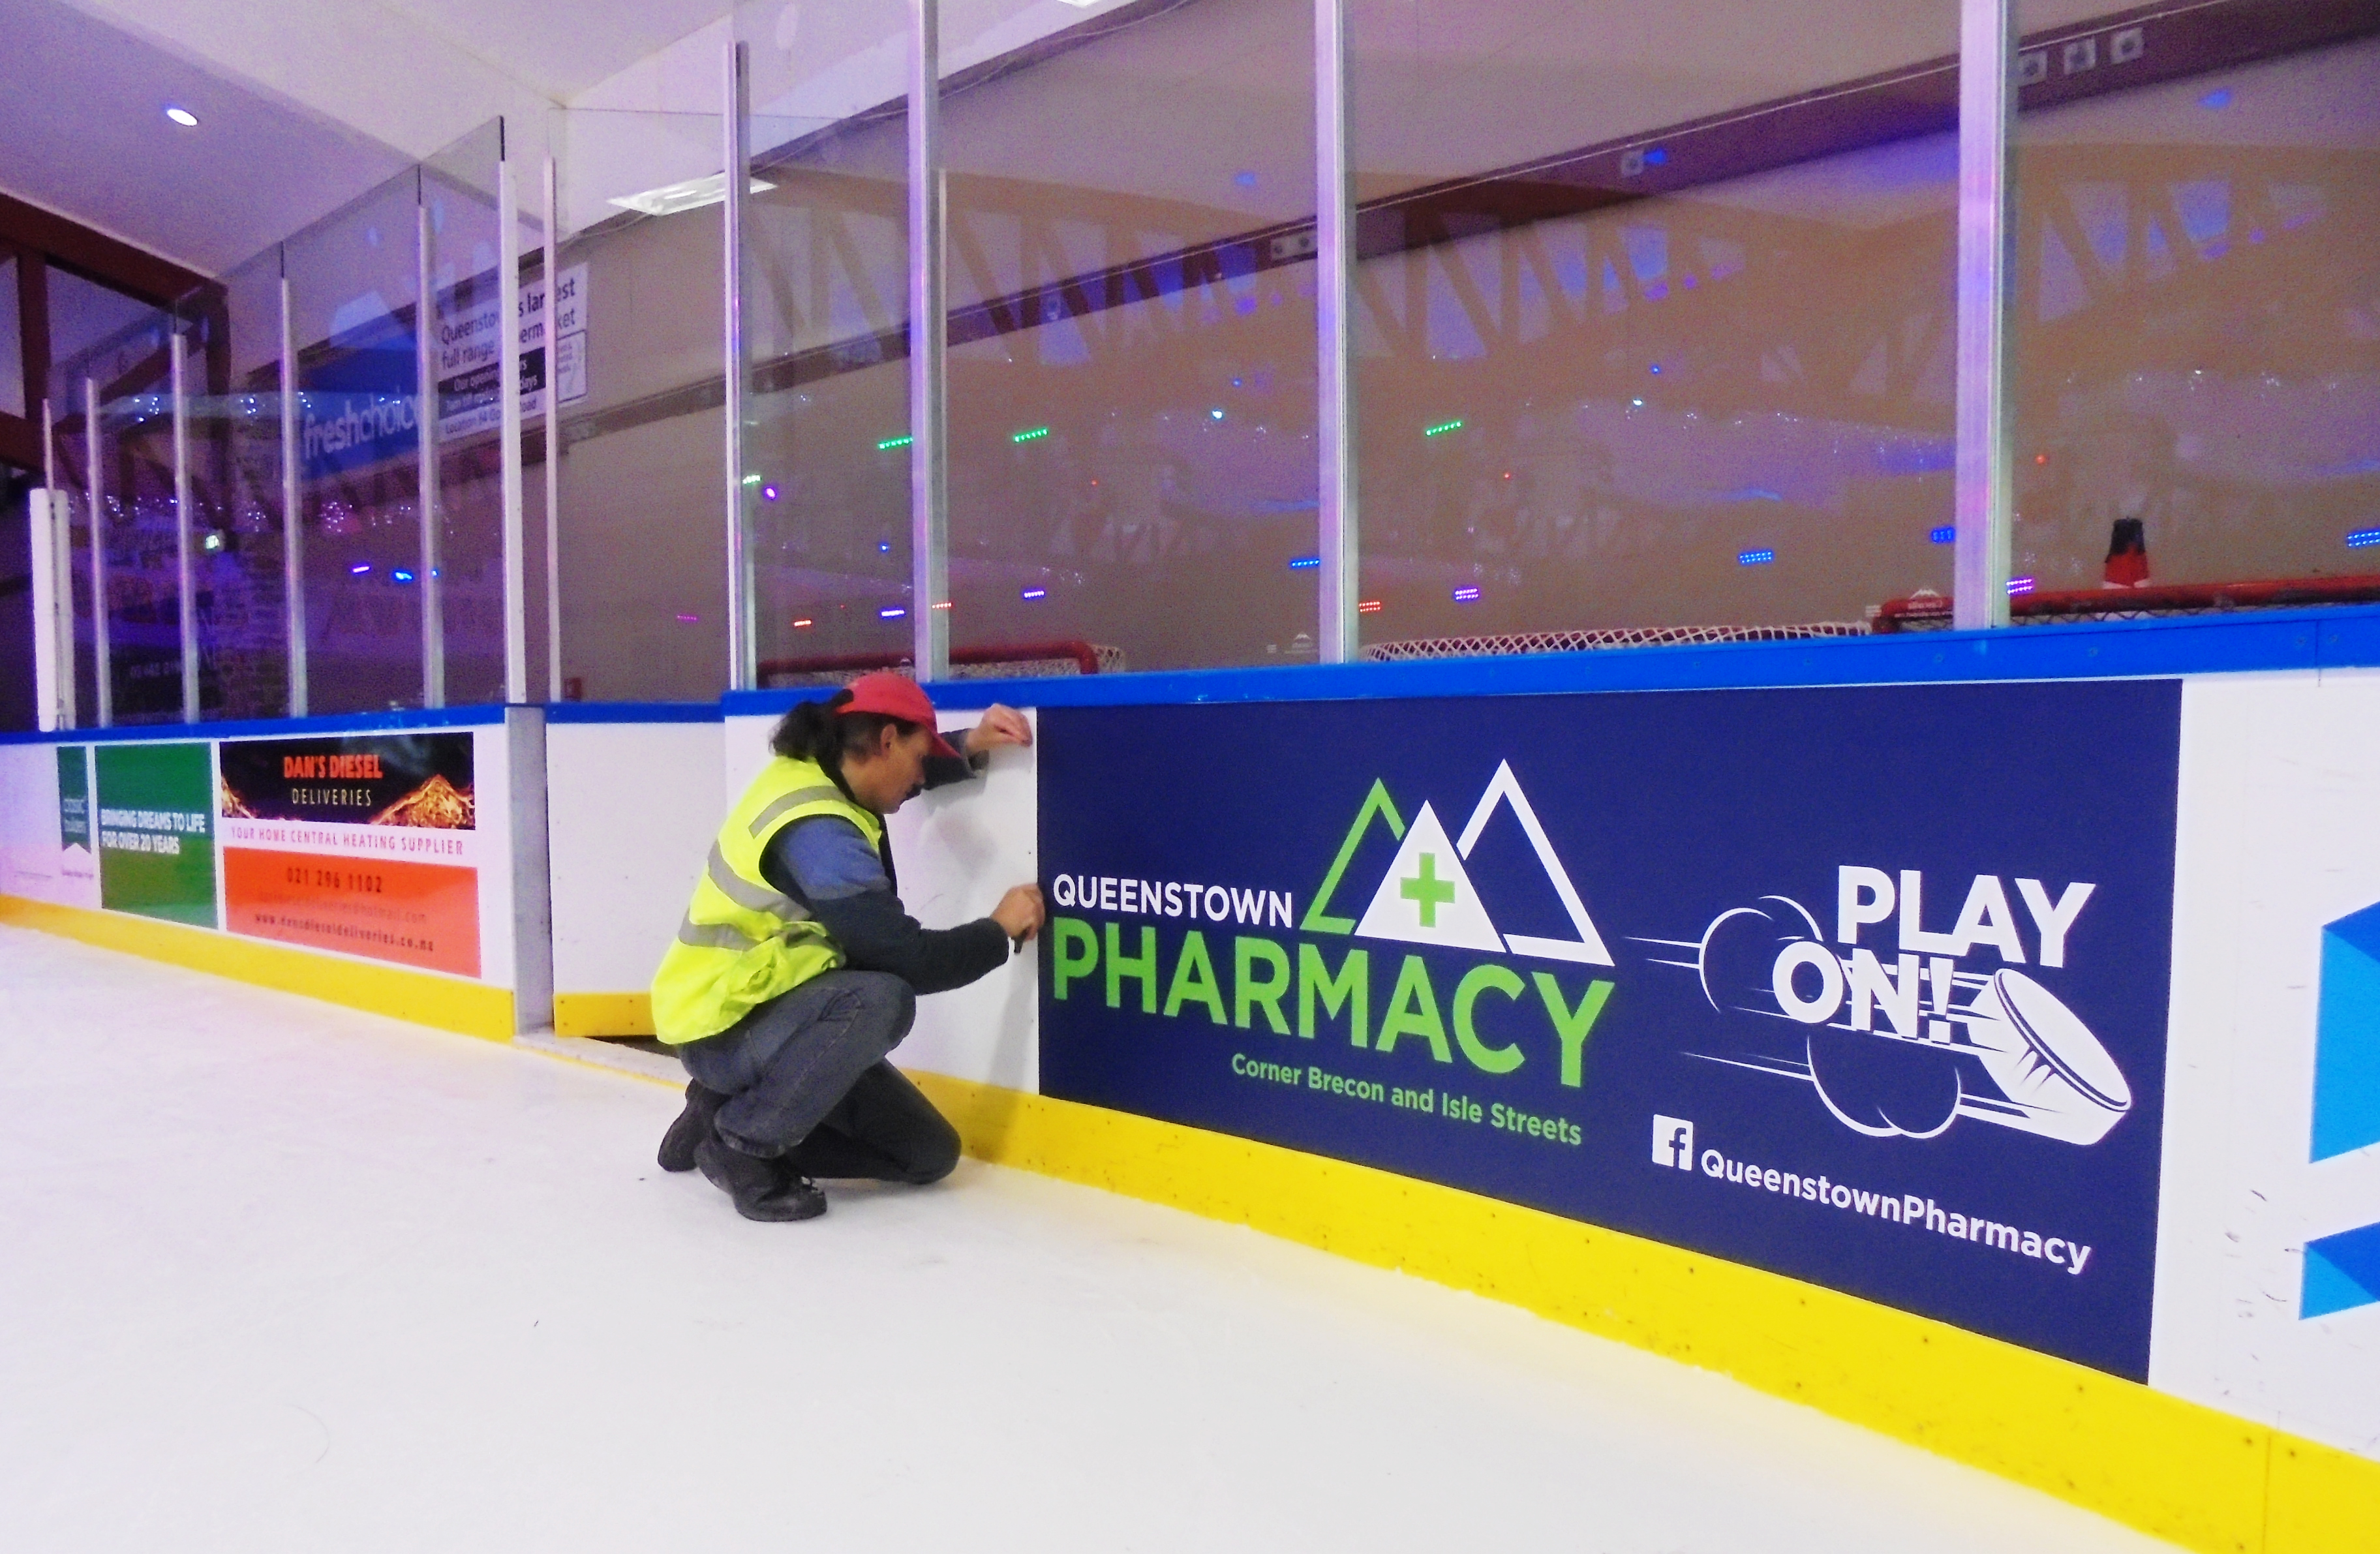 Install at ice rink